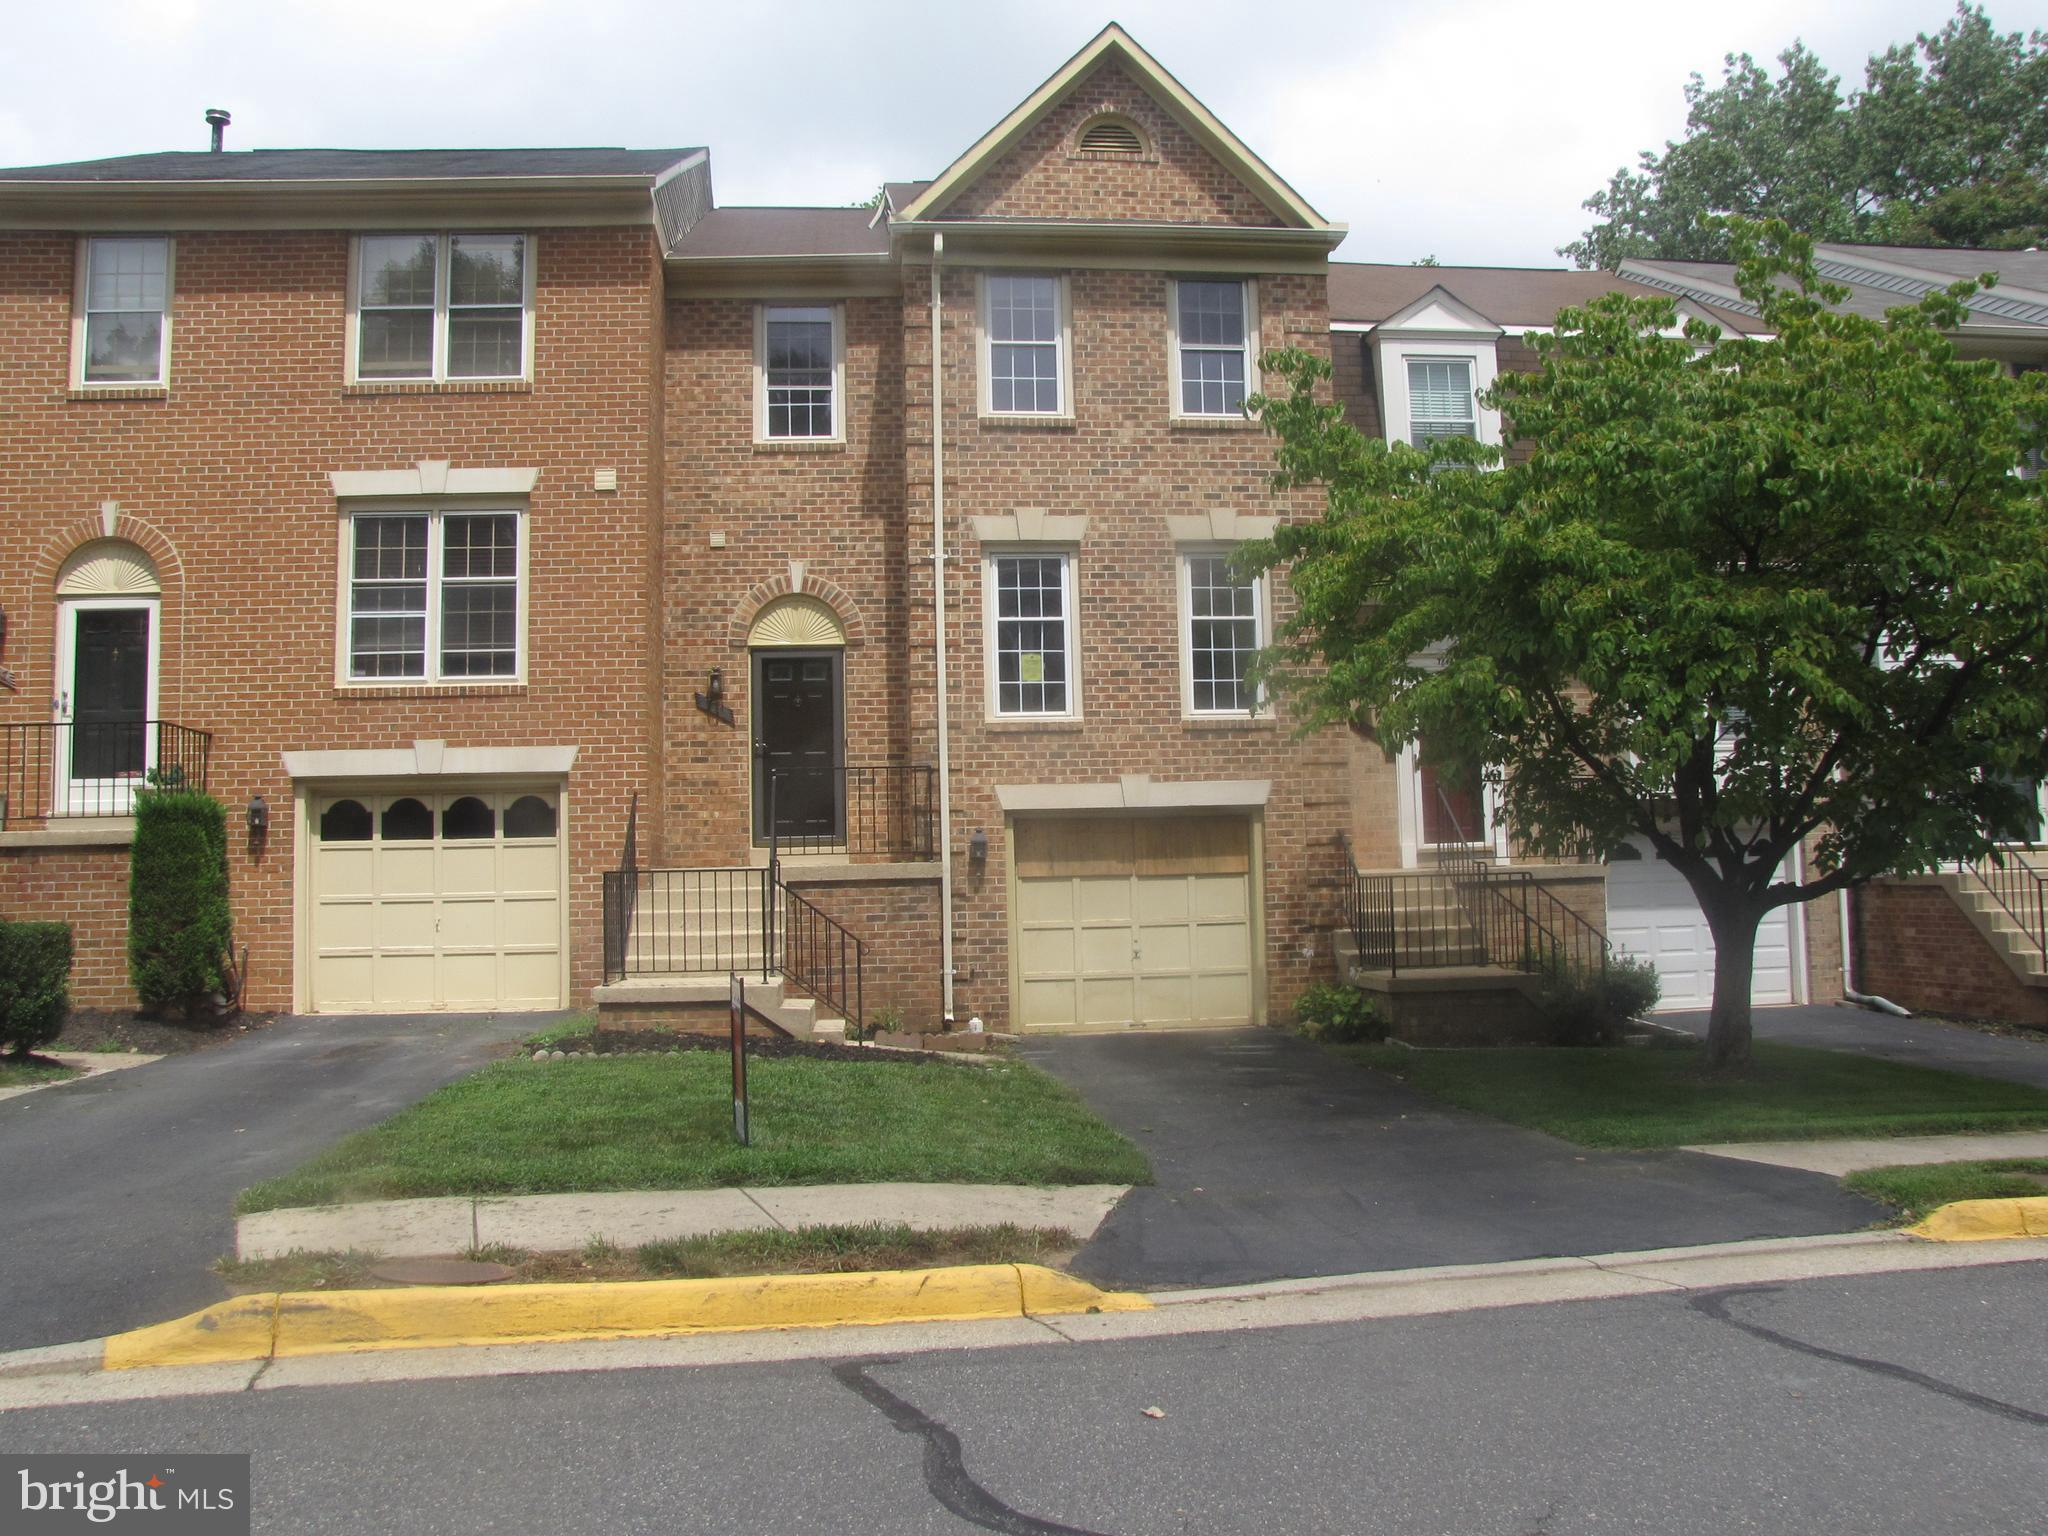 Available 08/20/2018. Delightful Townhome with 4 Bedrooms & 2.3 Baths brick front townhouse with over 2700 sqft in highly sought after Daventry neighborhood. Huge eat-in kitchen with corian countertops , that leads out to spacious private deck. Large Master Bedroom, with walk-in closet.walk-out lvl basement with wood burning Fireplace. A lot of storage space, Fully fenced rear, Finished Basement!!